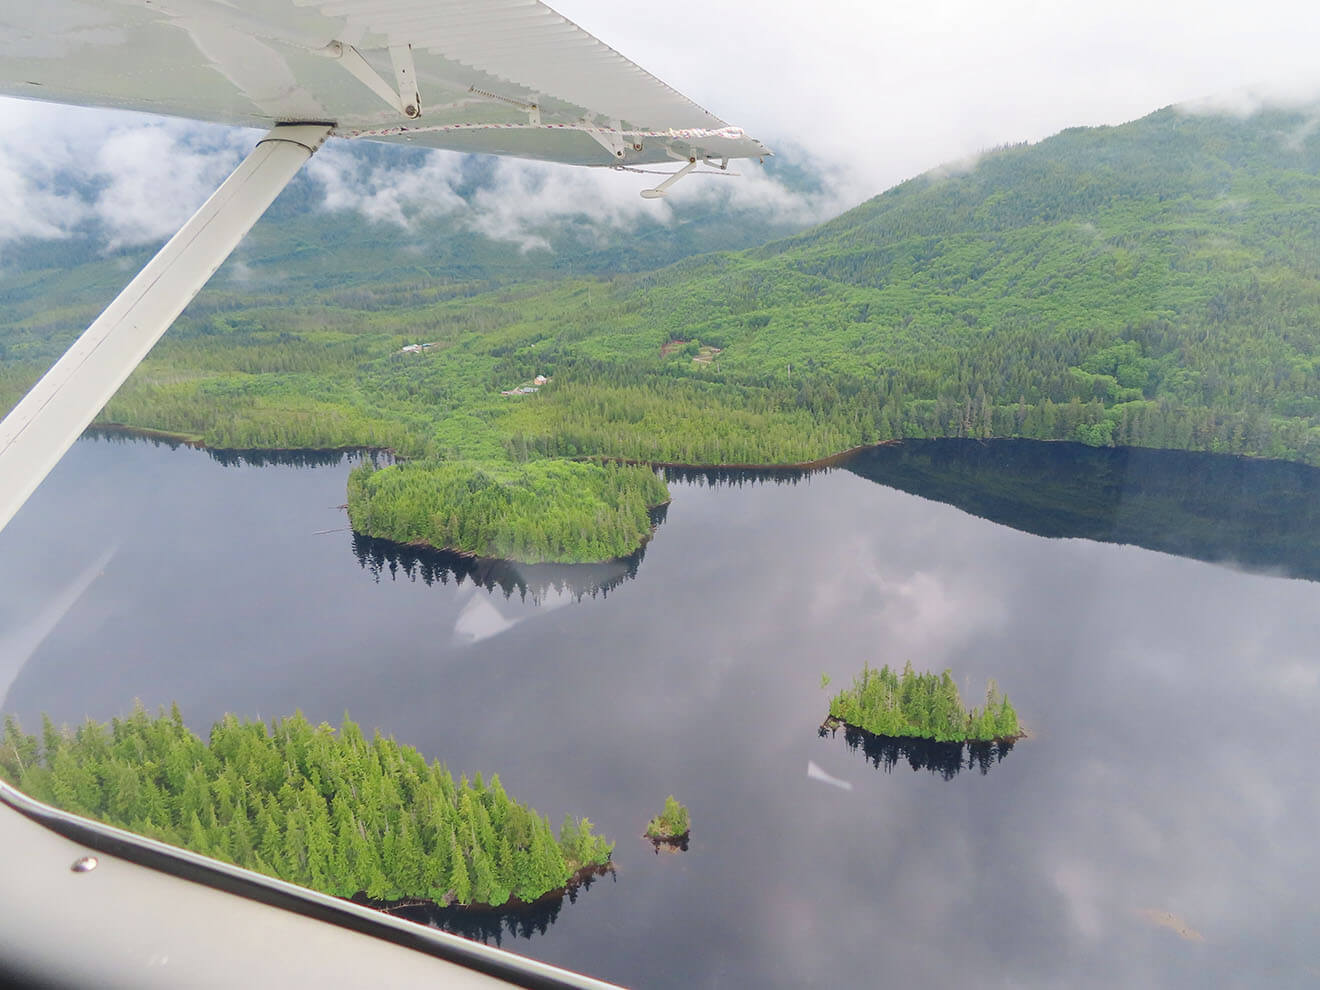 View from seaplane